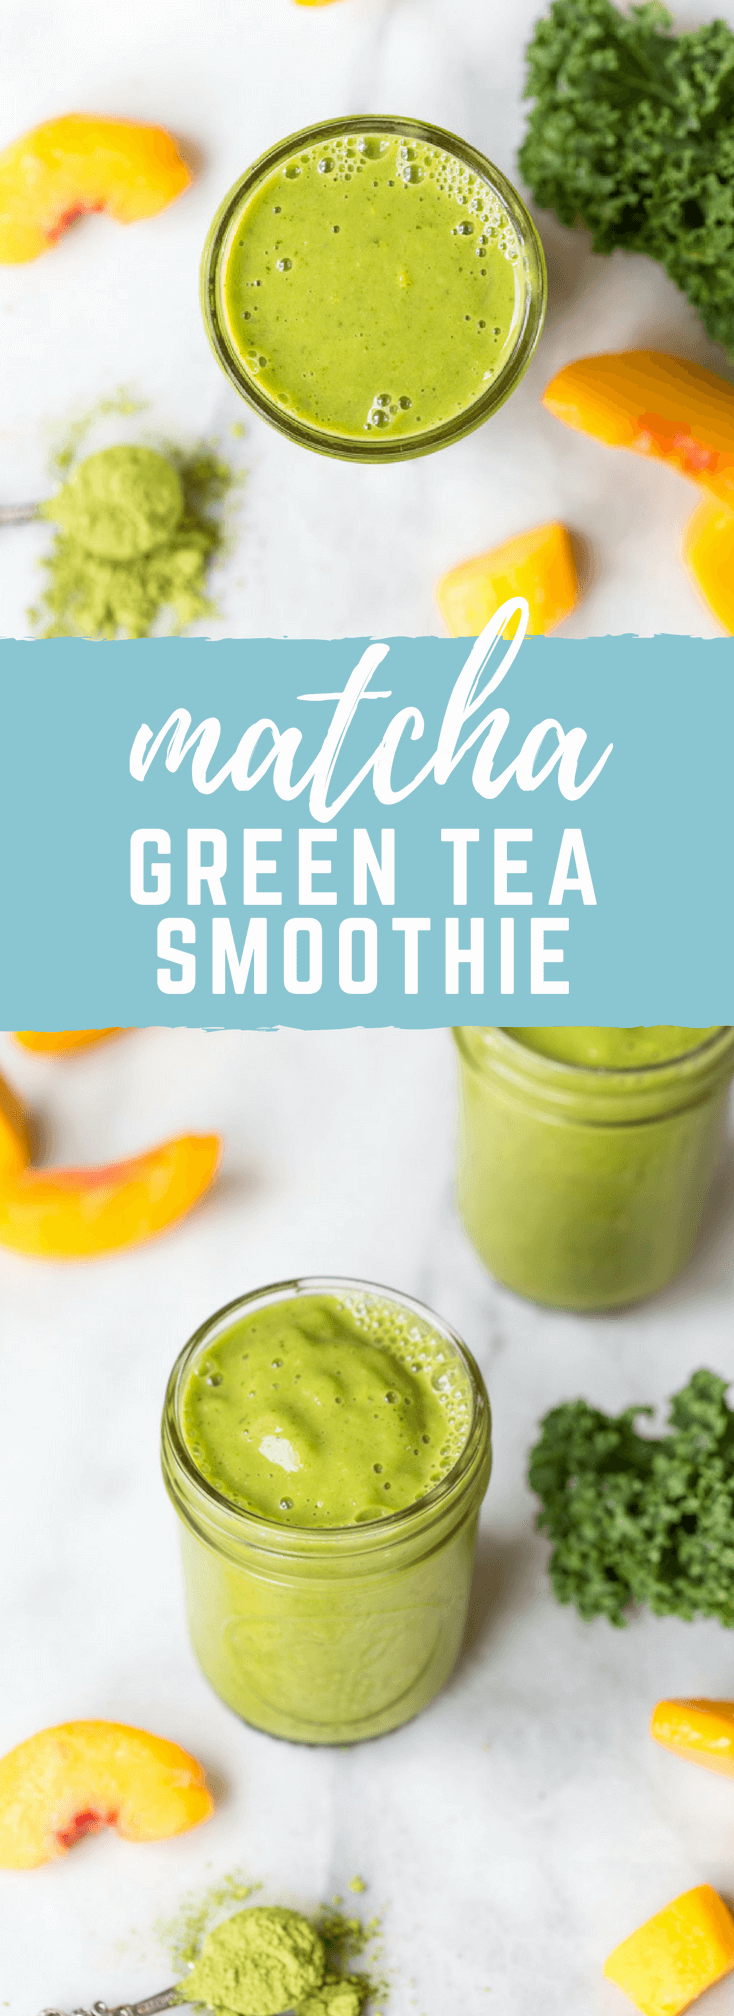 Go green with this mighty Matcha Green Tea Smoothie made with frozen mango, peaches, kale, orange juice, kefir, and matcha green tea powder. It's antioxidant rich, smooth and creamy and makes a great breakfast or snack!